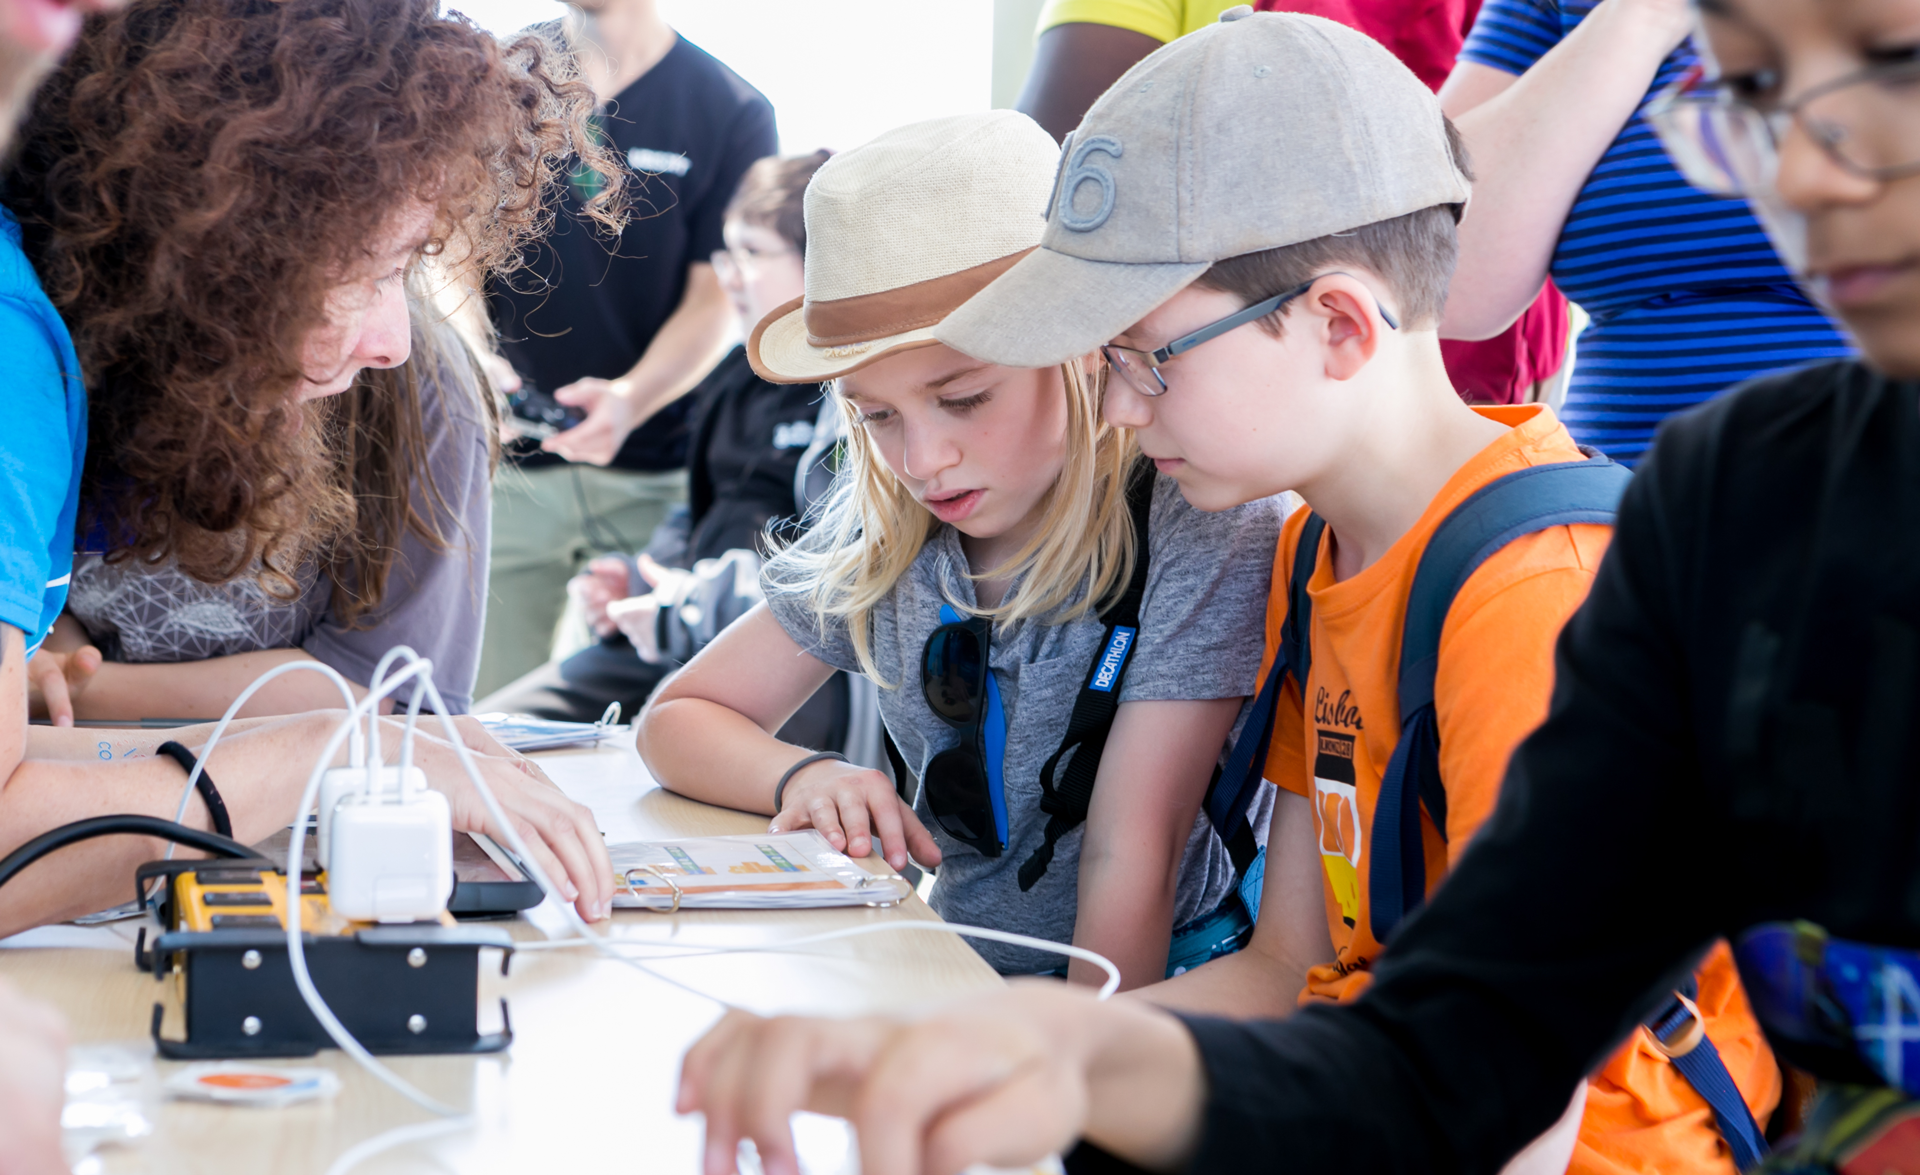 Ubisoft Education x Eureka Festival: a wonderful first year!